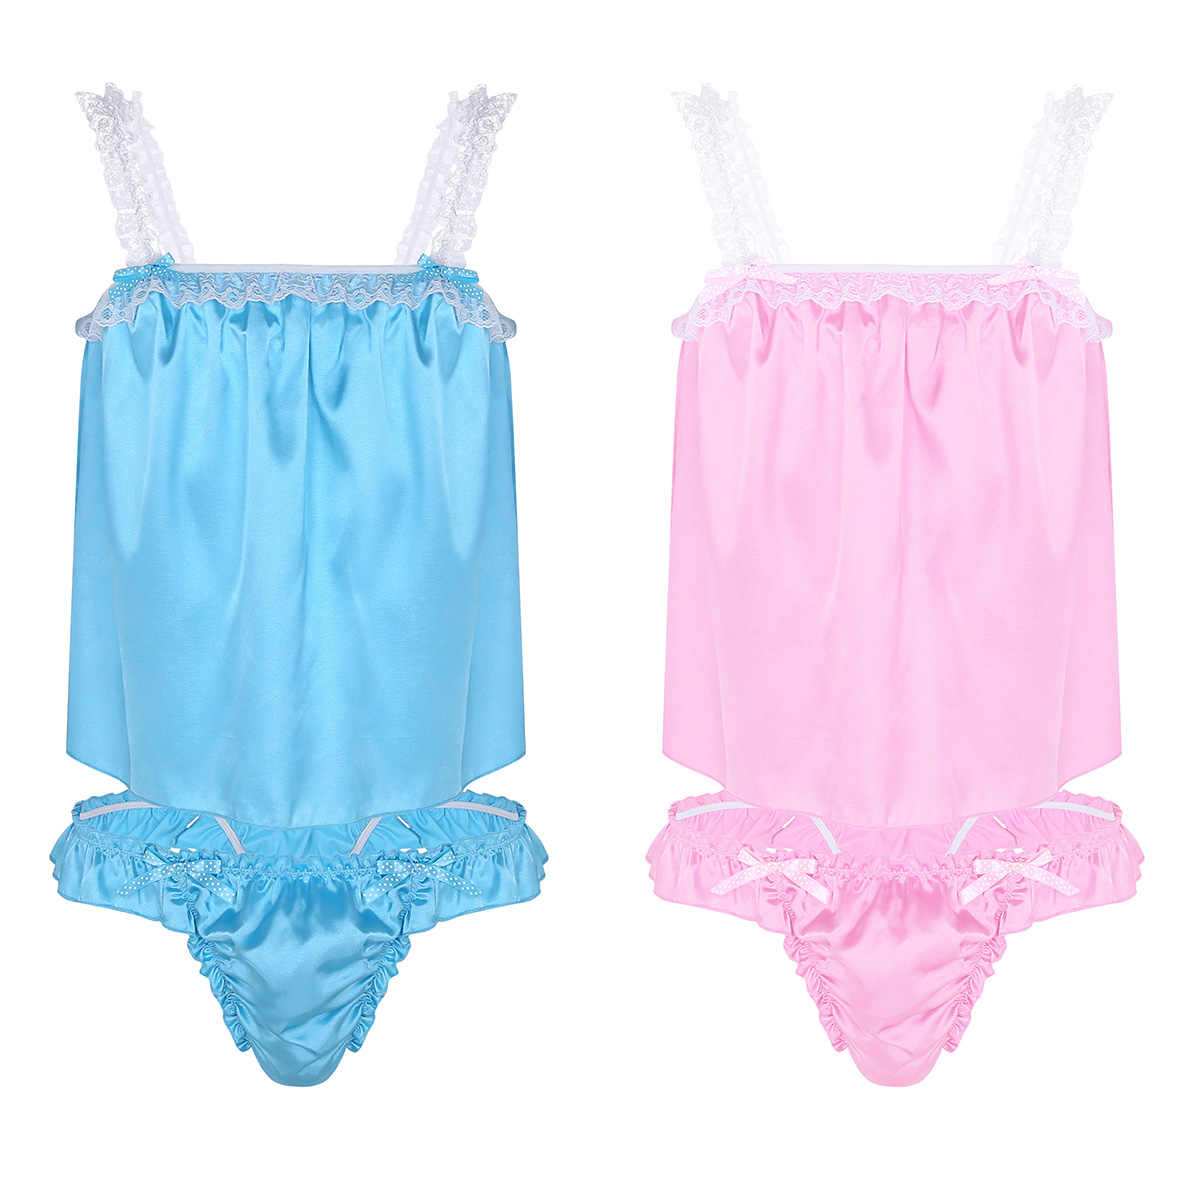 ... Mens Sexy Lingerie Set Shiny Satin Tops with Ruffled Bikini Briefs  Underwear Nightwear Sleepwear Bedtime Sissy ...